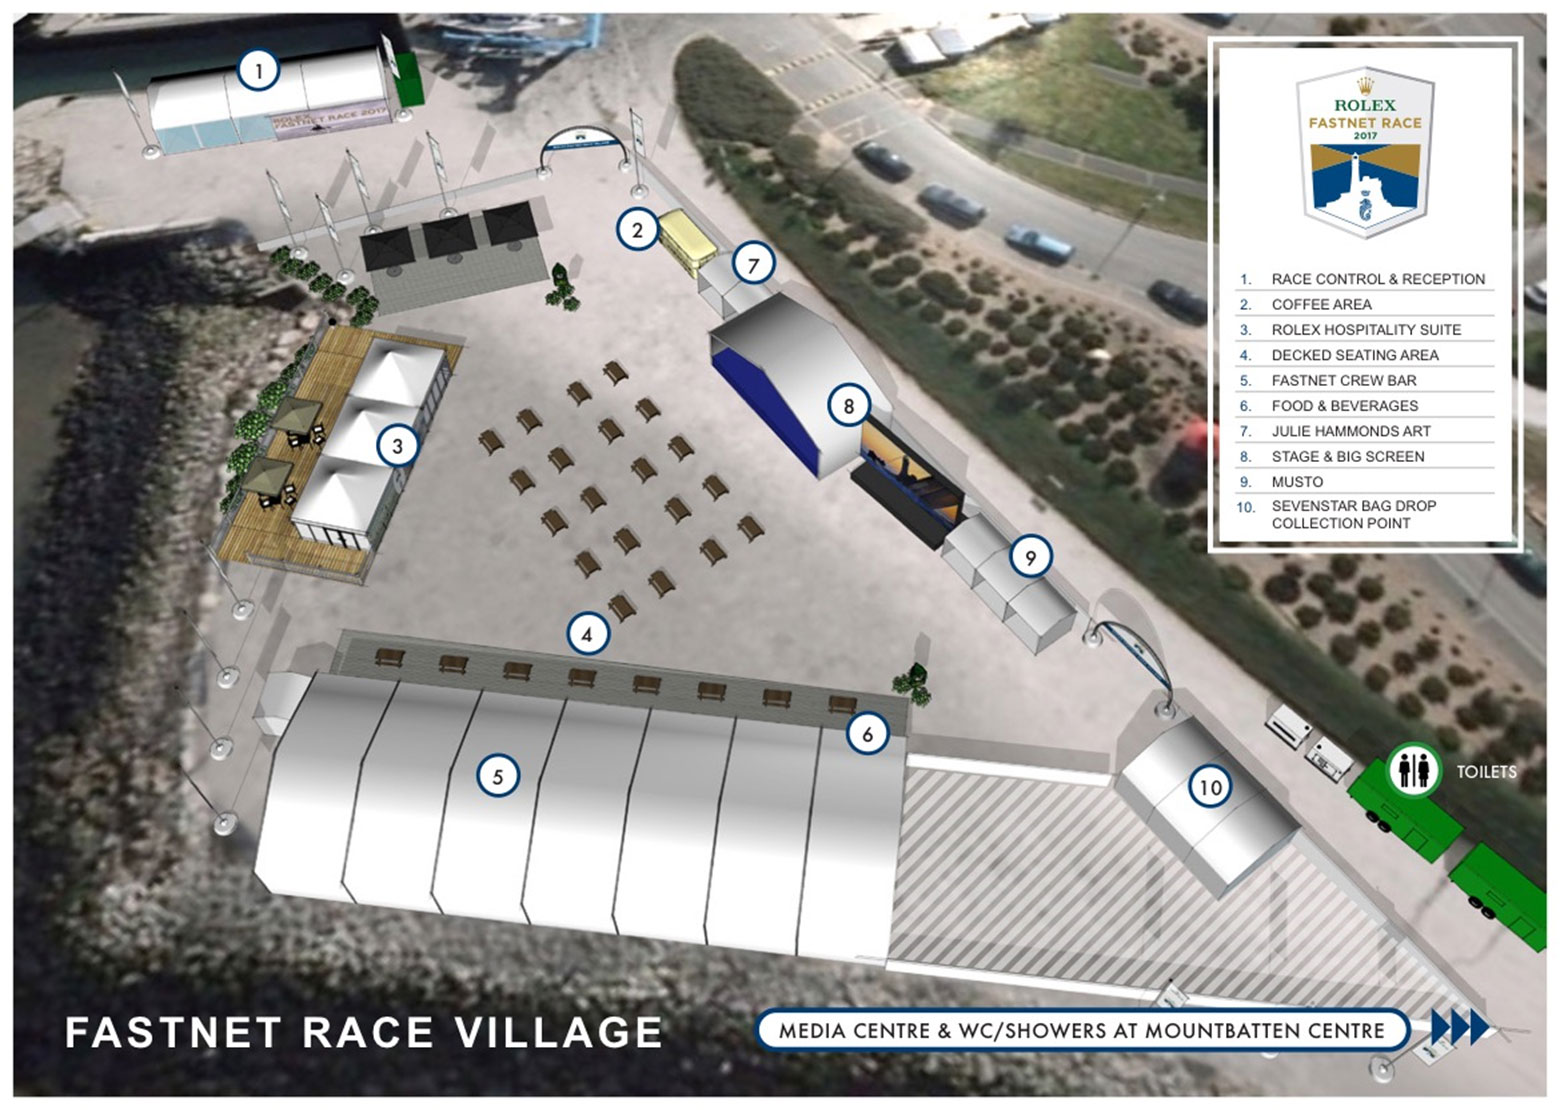 2017 rfr race village plan